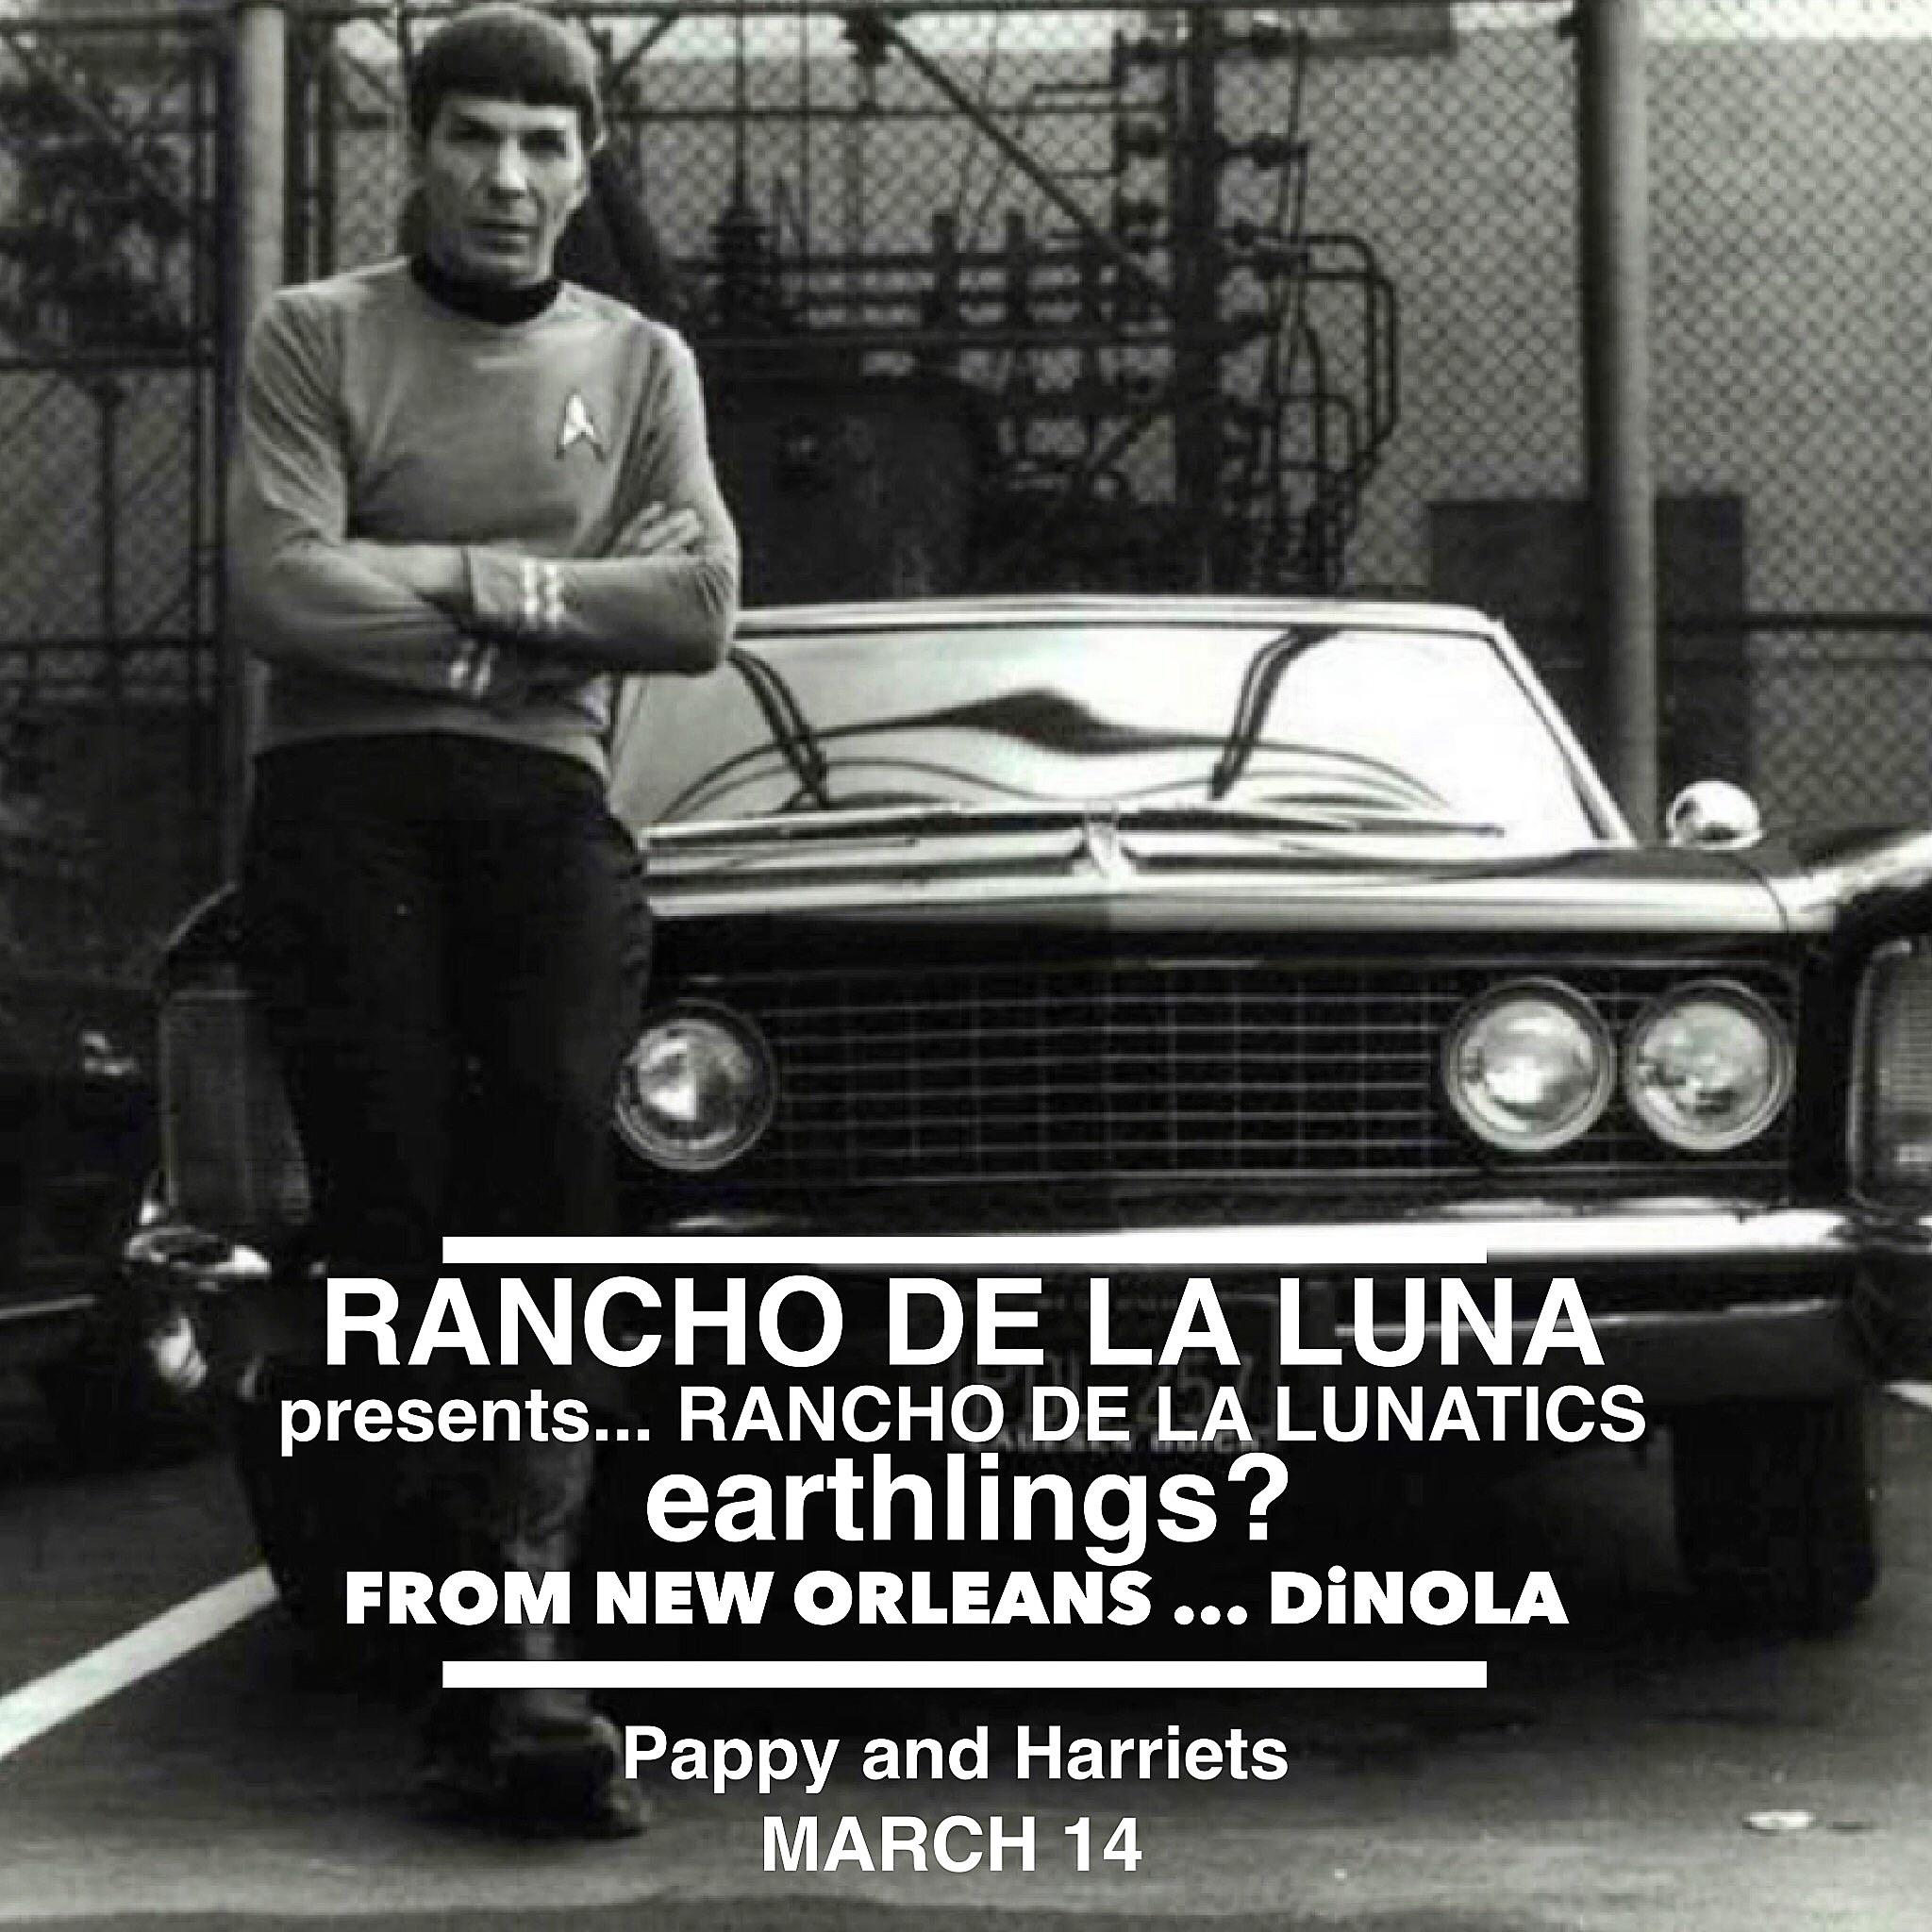 EARTHLINGS? / DINOLA / RANCHO DE LA LUNATICS AND GUESTS